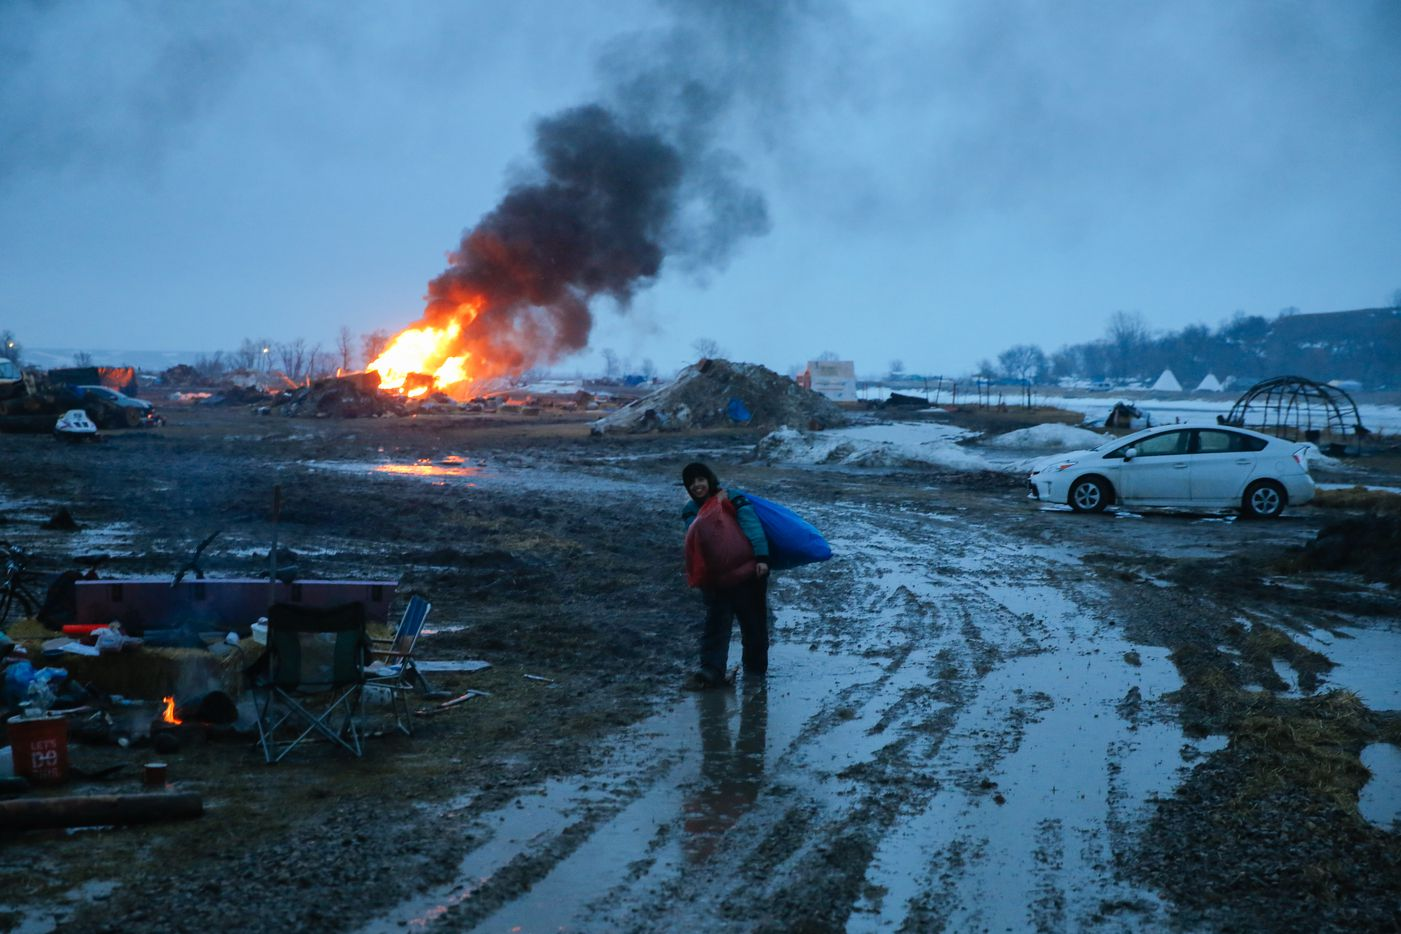 Campers set structures on fire in preparation of the Army Corp's 2pm deadline to leave the Oceti Sakowin protest camp on February 22, 2017 in Cannon Ball, North Dakota.